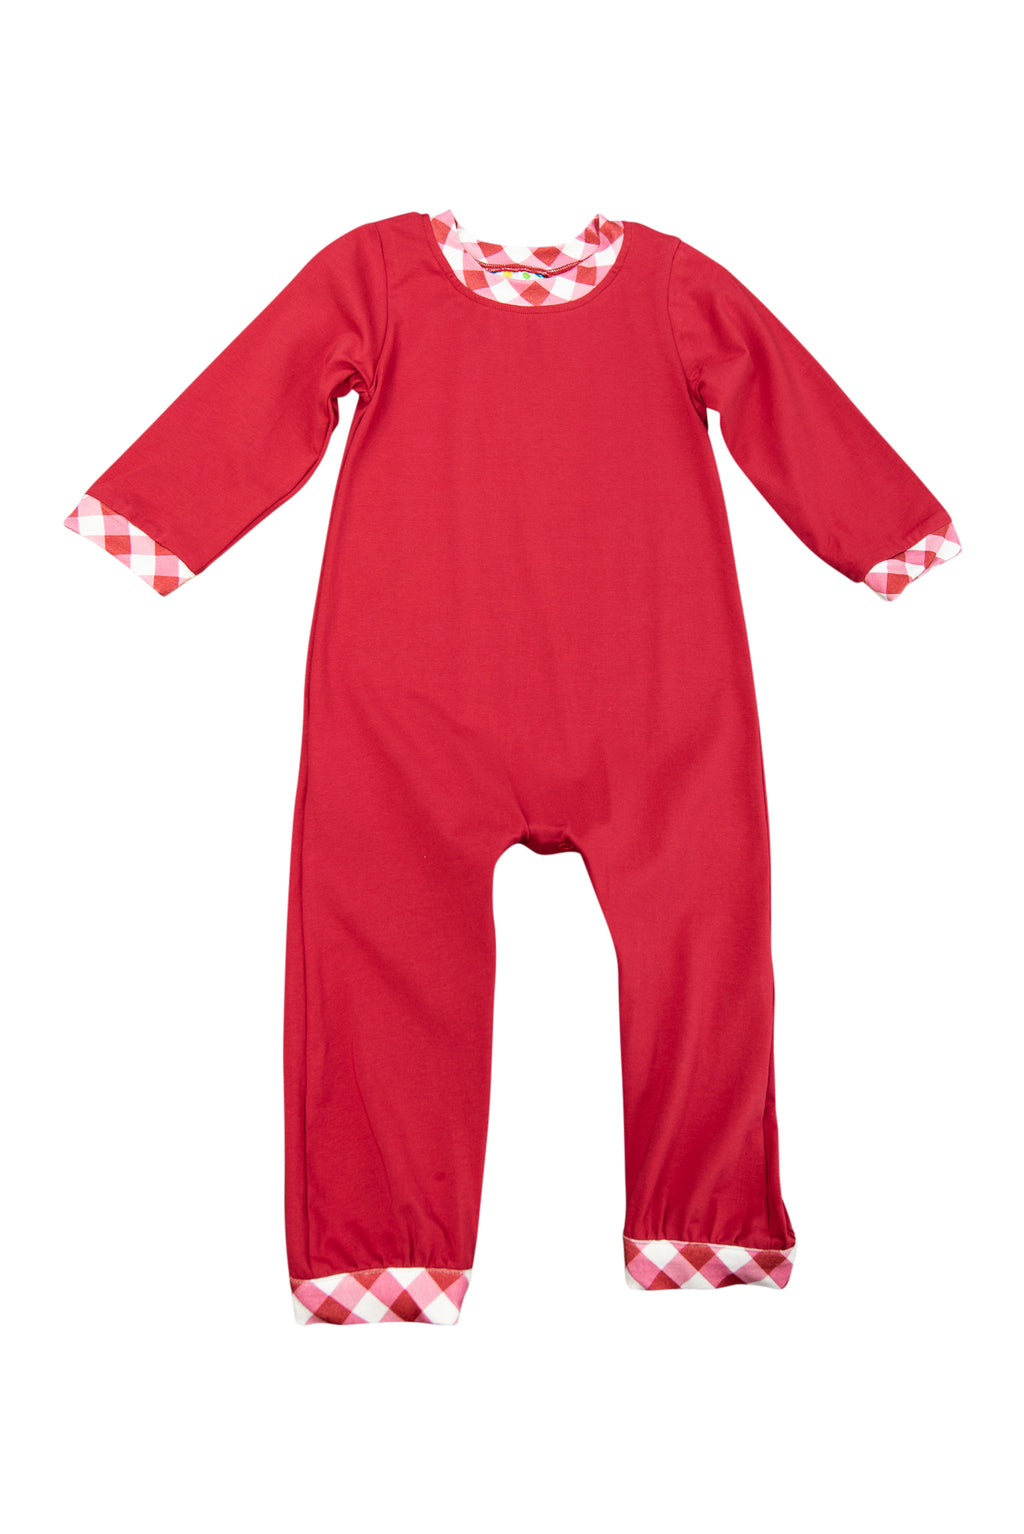 Boys Winter Romper